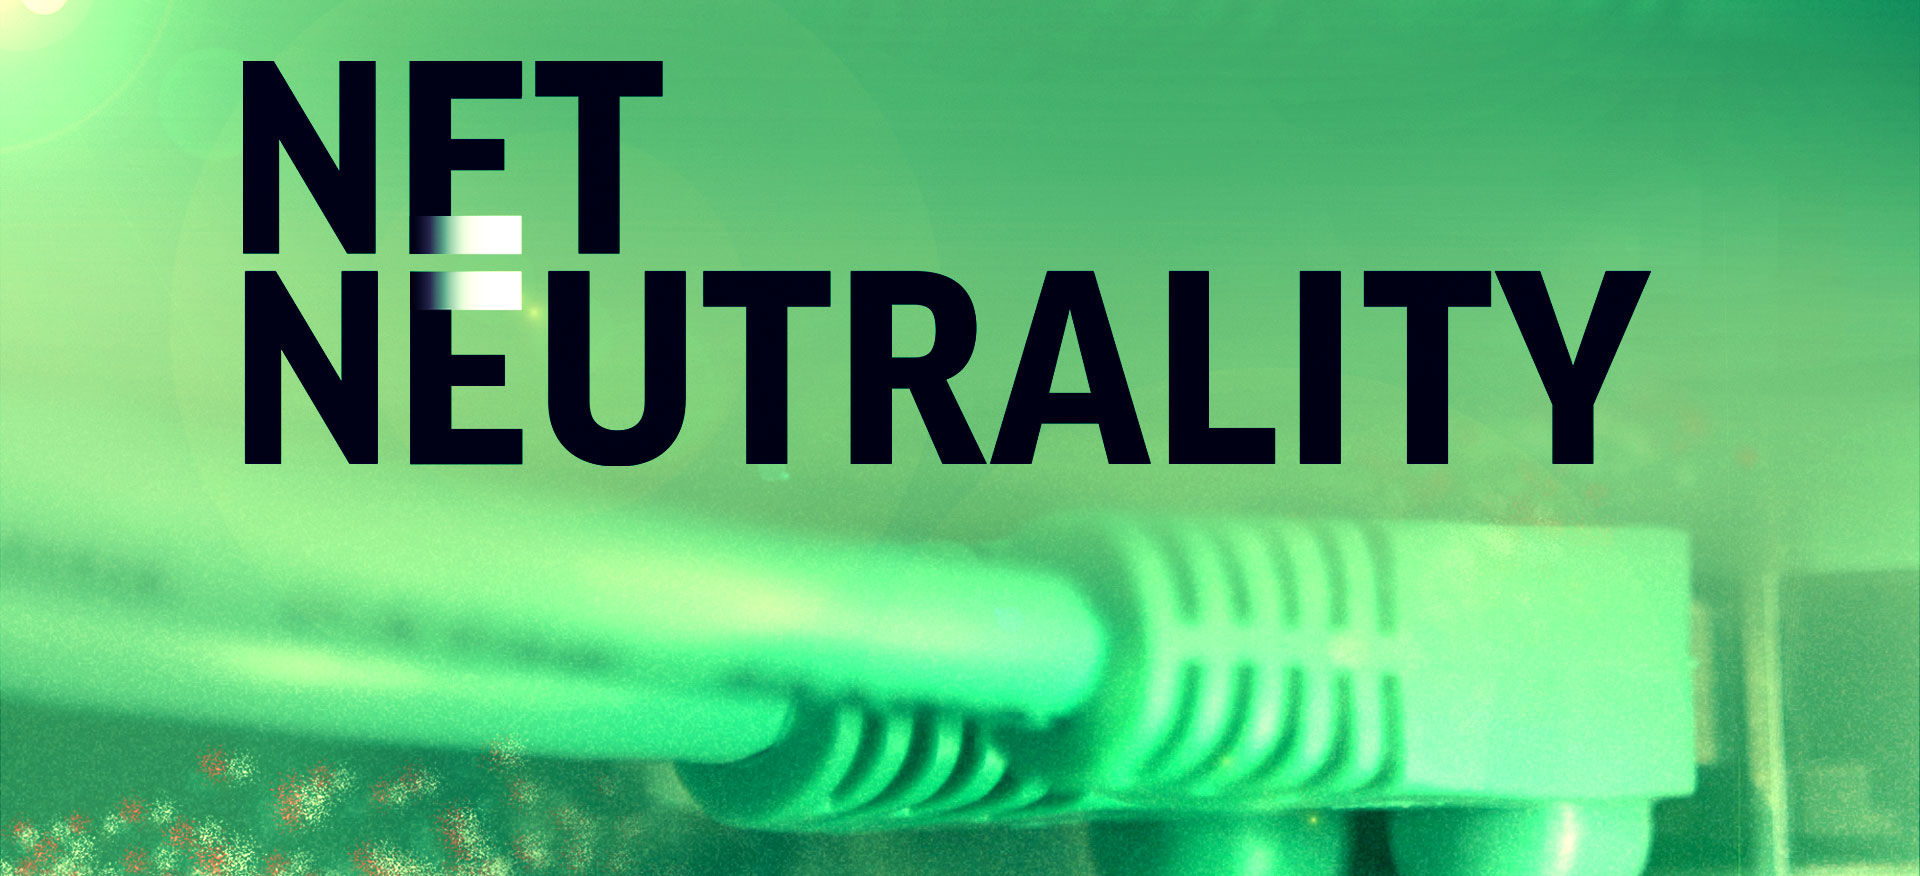 Court Upholds Net Neutrality Rules On Equal Internet Access